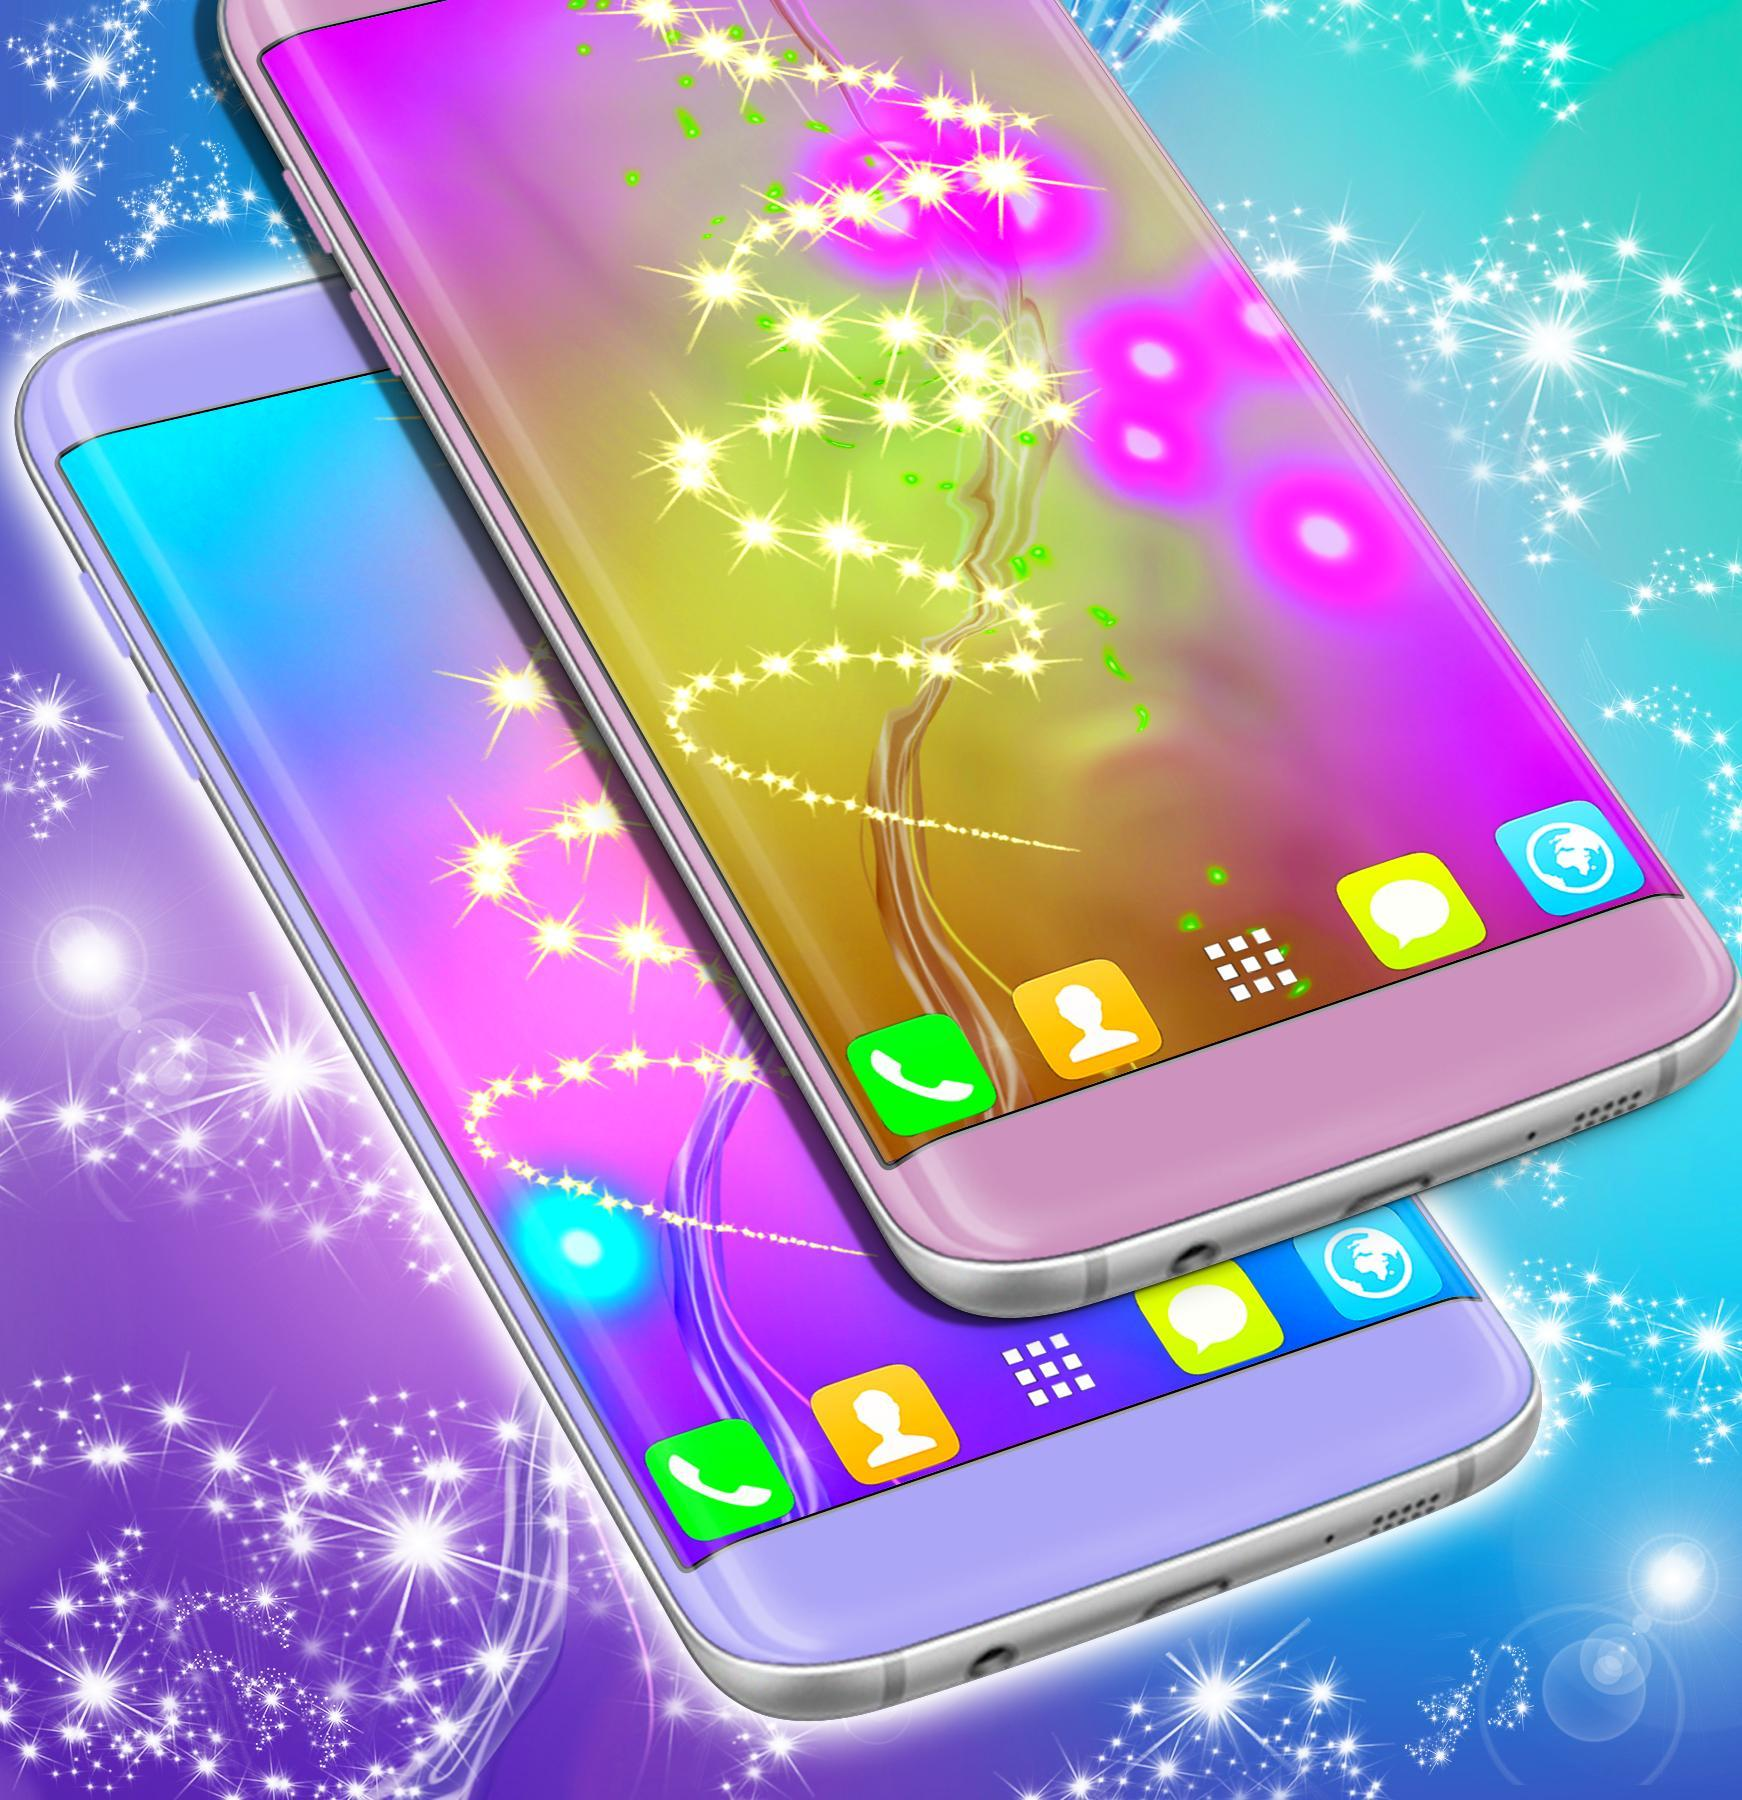 Live 3d Wallpapers And Backgrounds For Samsung S6 For